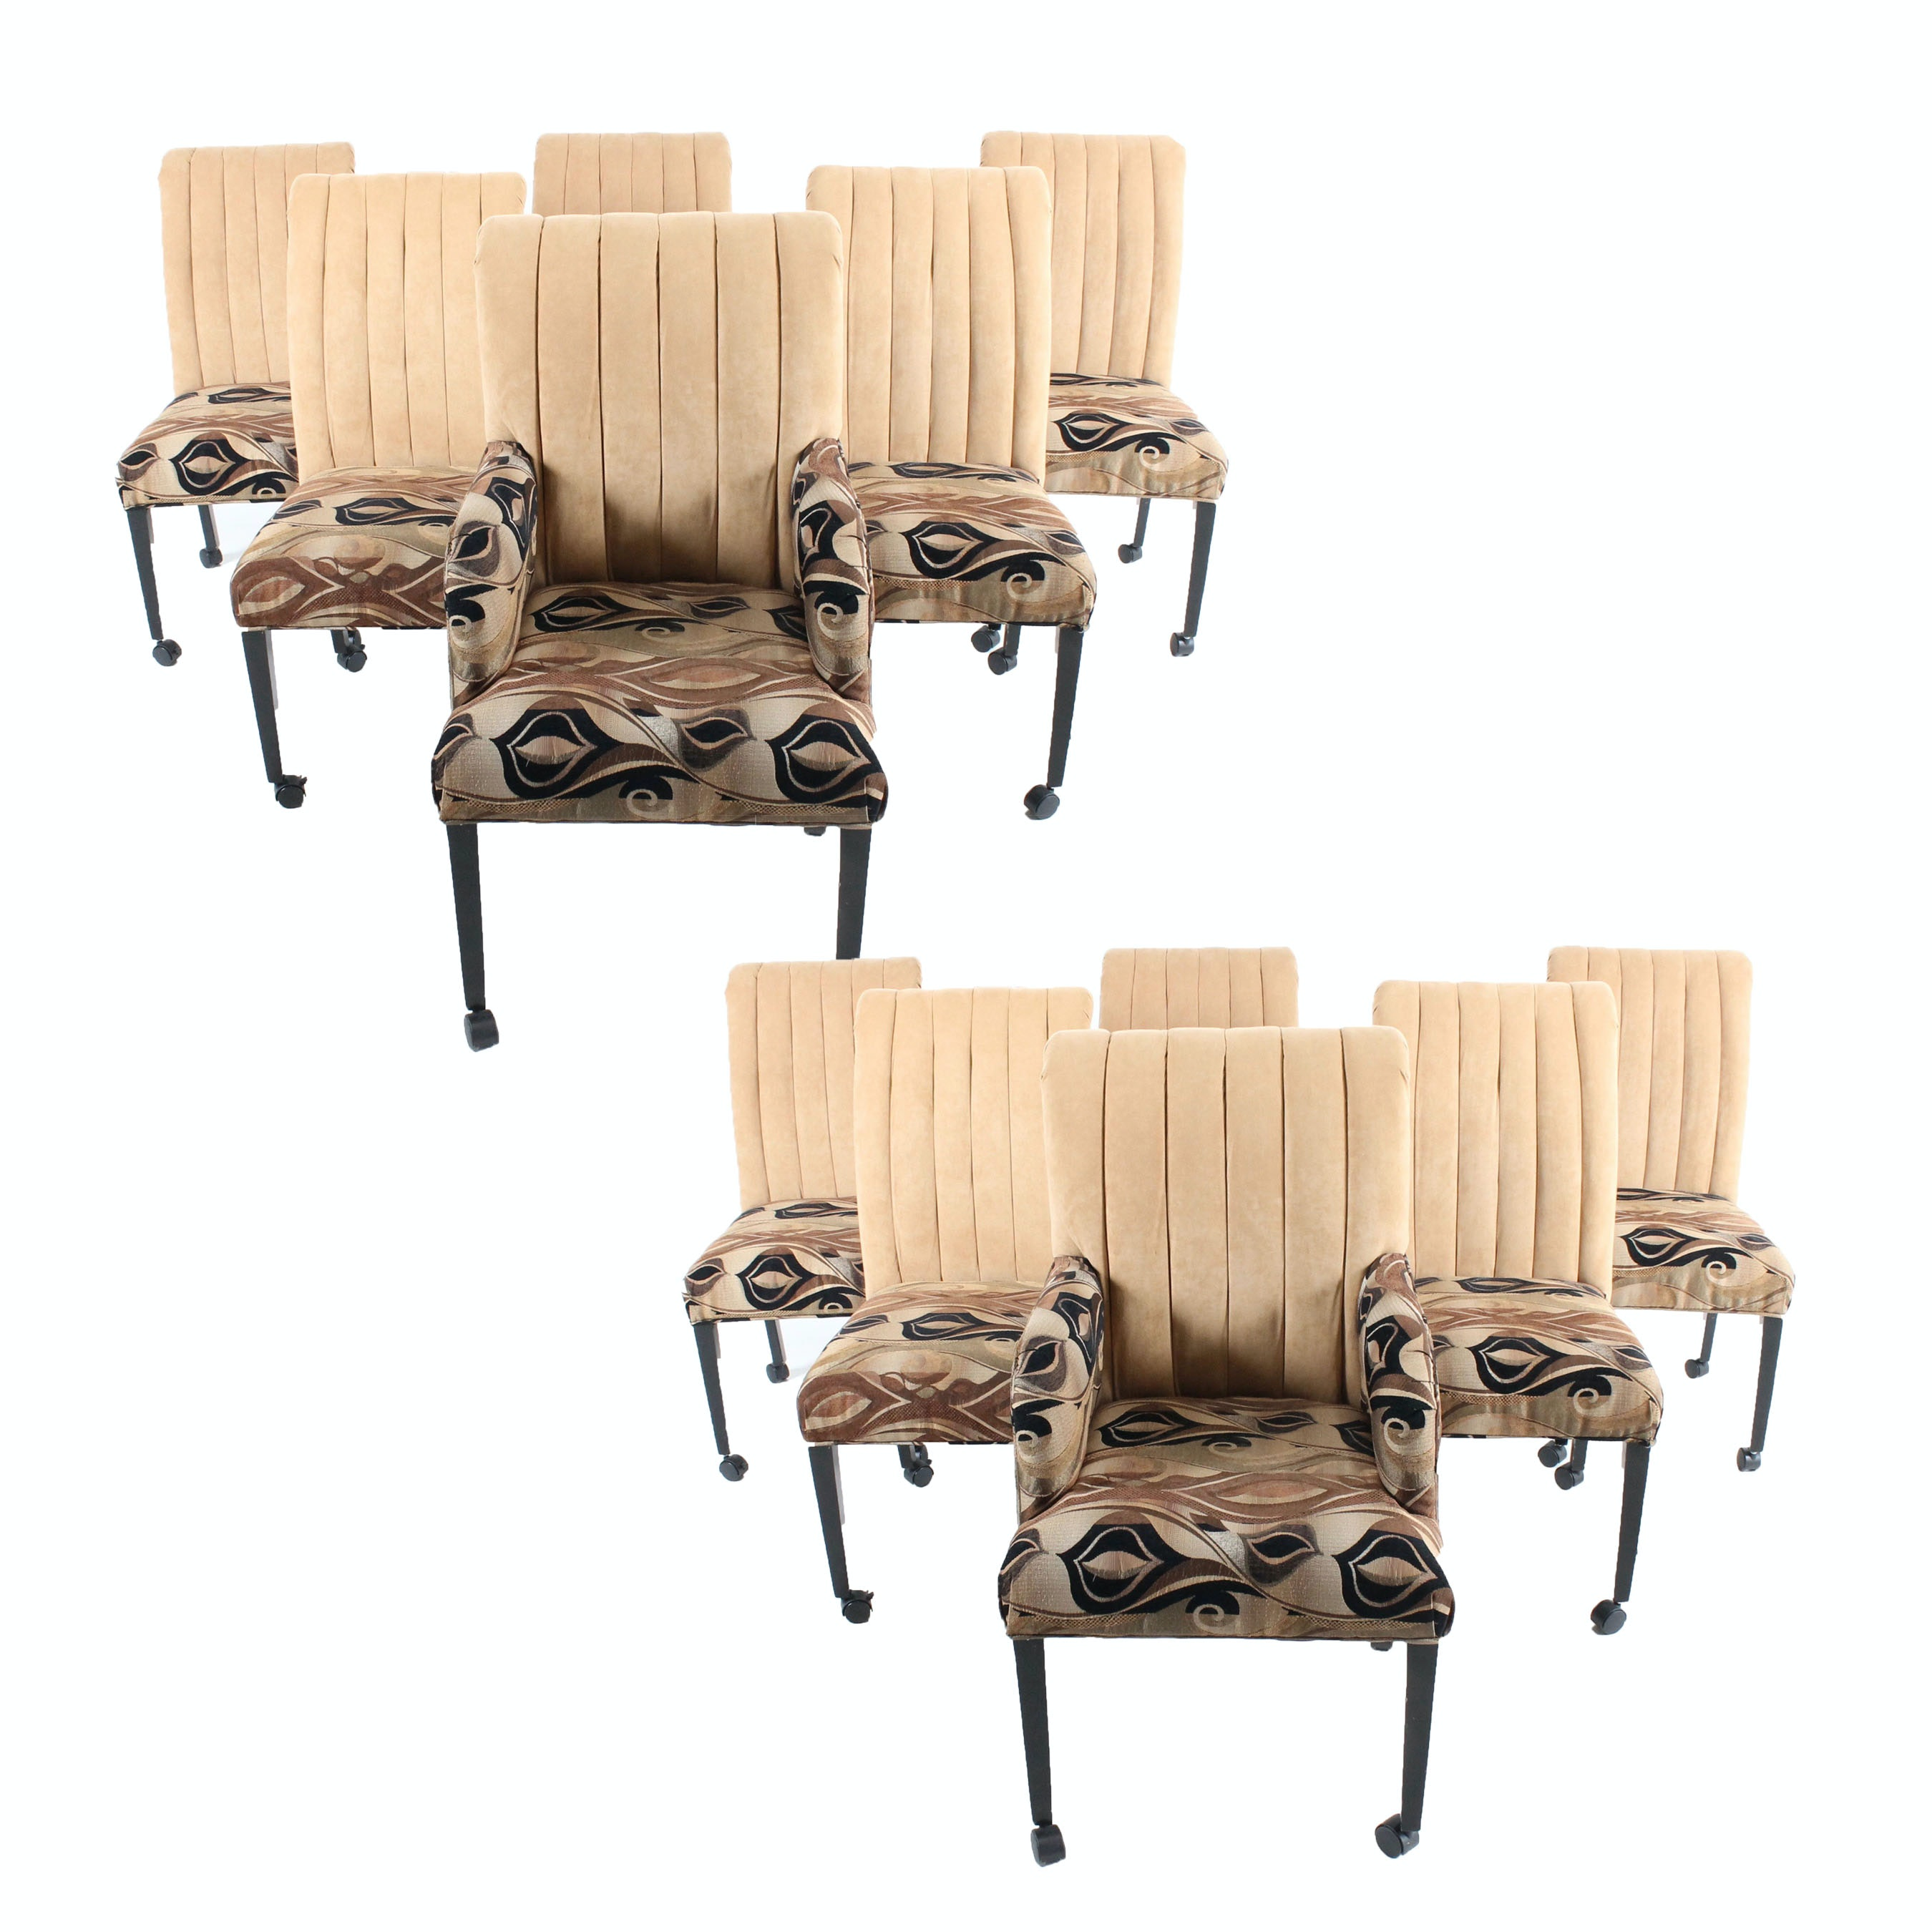 Upholstered High Back Dining Chairs with Casters